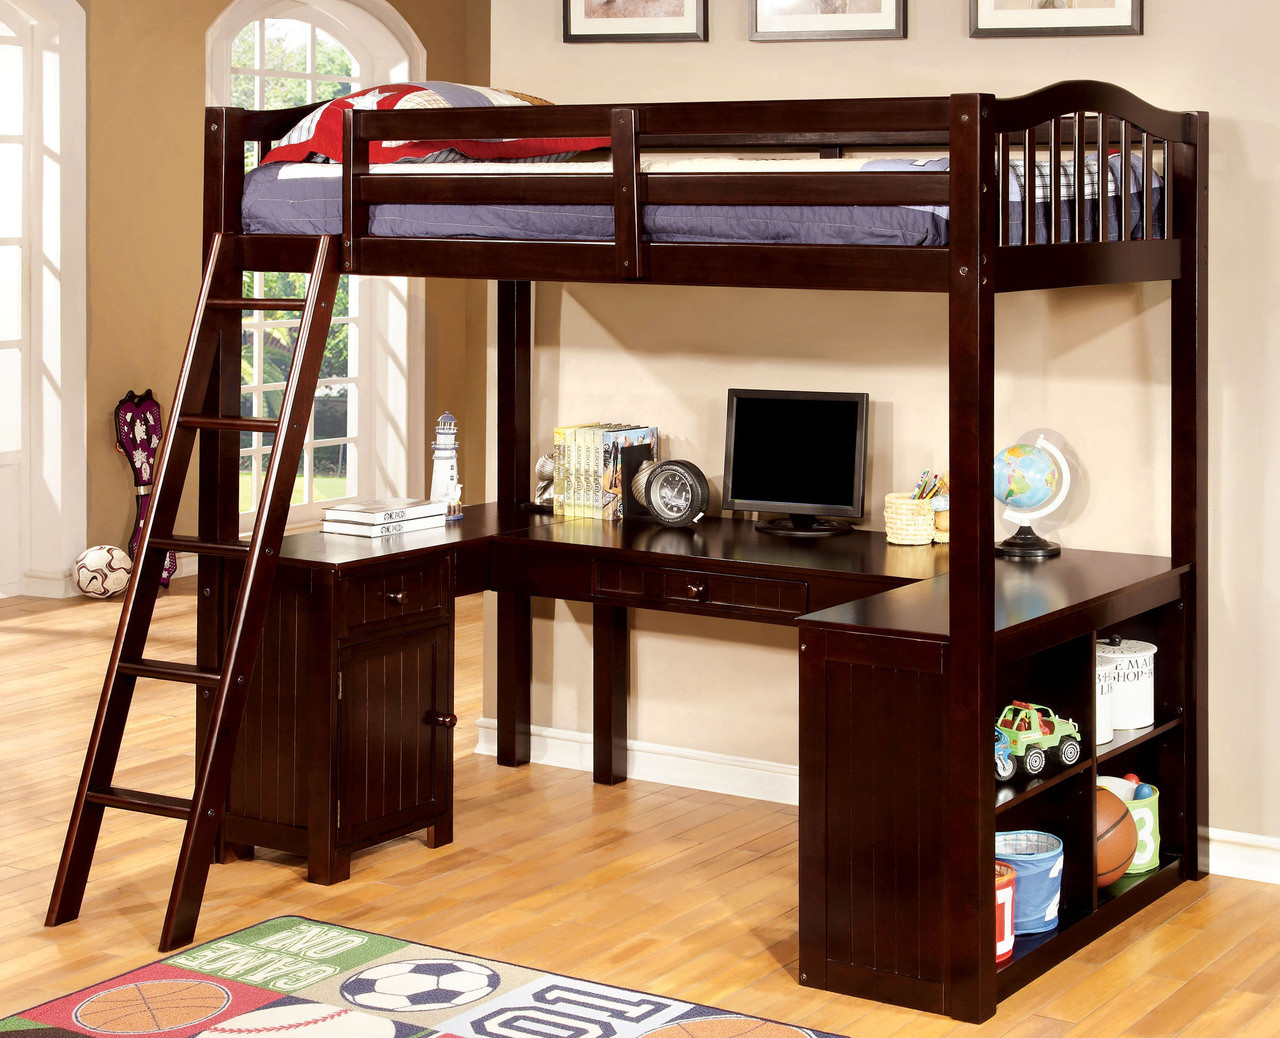 Etonnant Oak Wood Twin Loft Bed With U Shaped Desk Underneath · Espresso ...